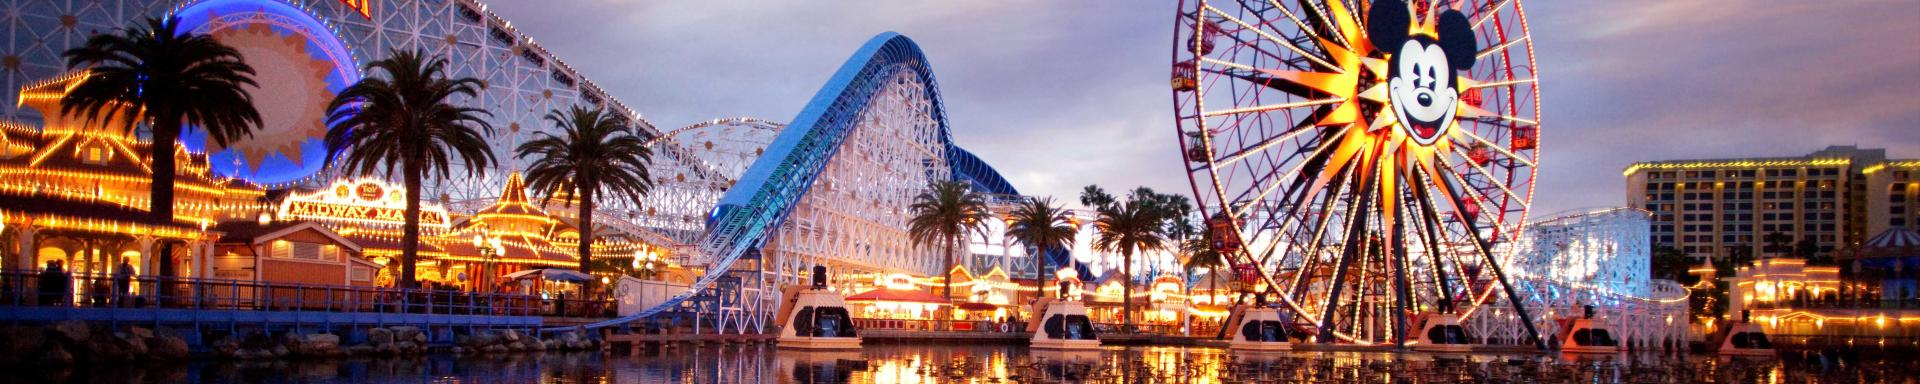 Disneyland California - Save 20% on 2019 Departures!